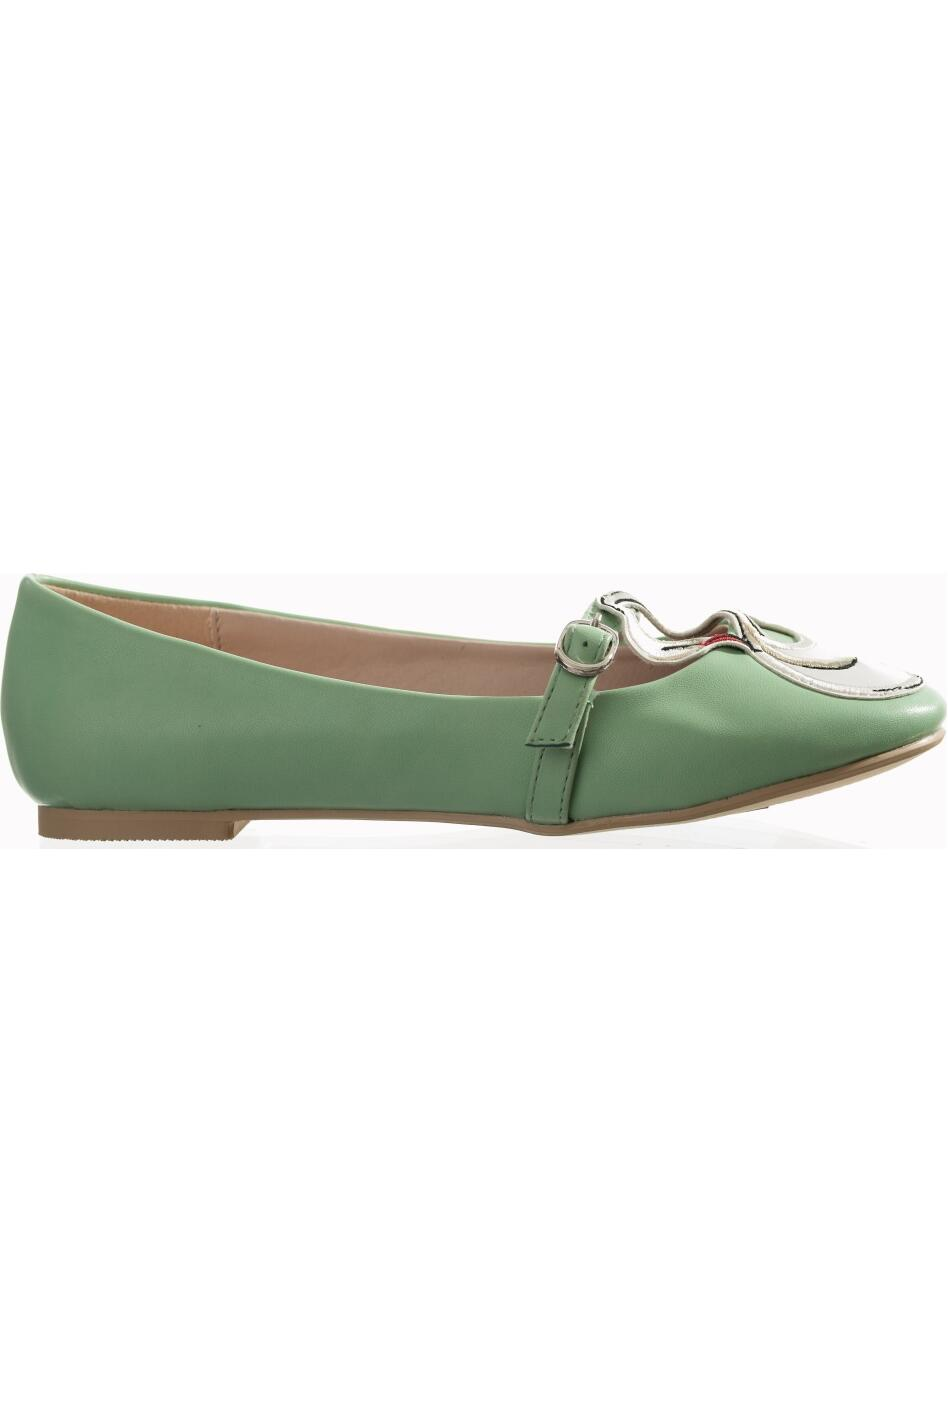 Banned Ballerinas Swan mint